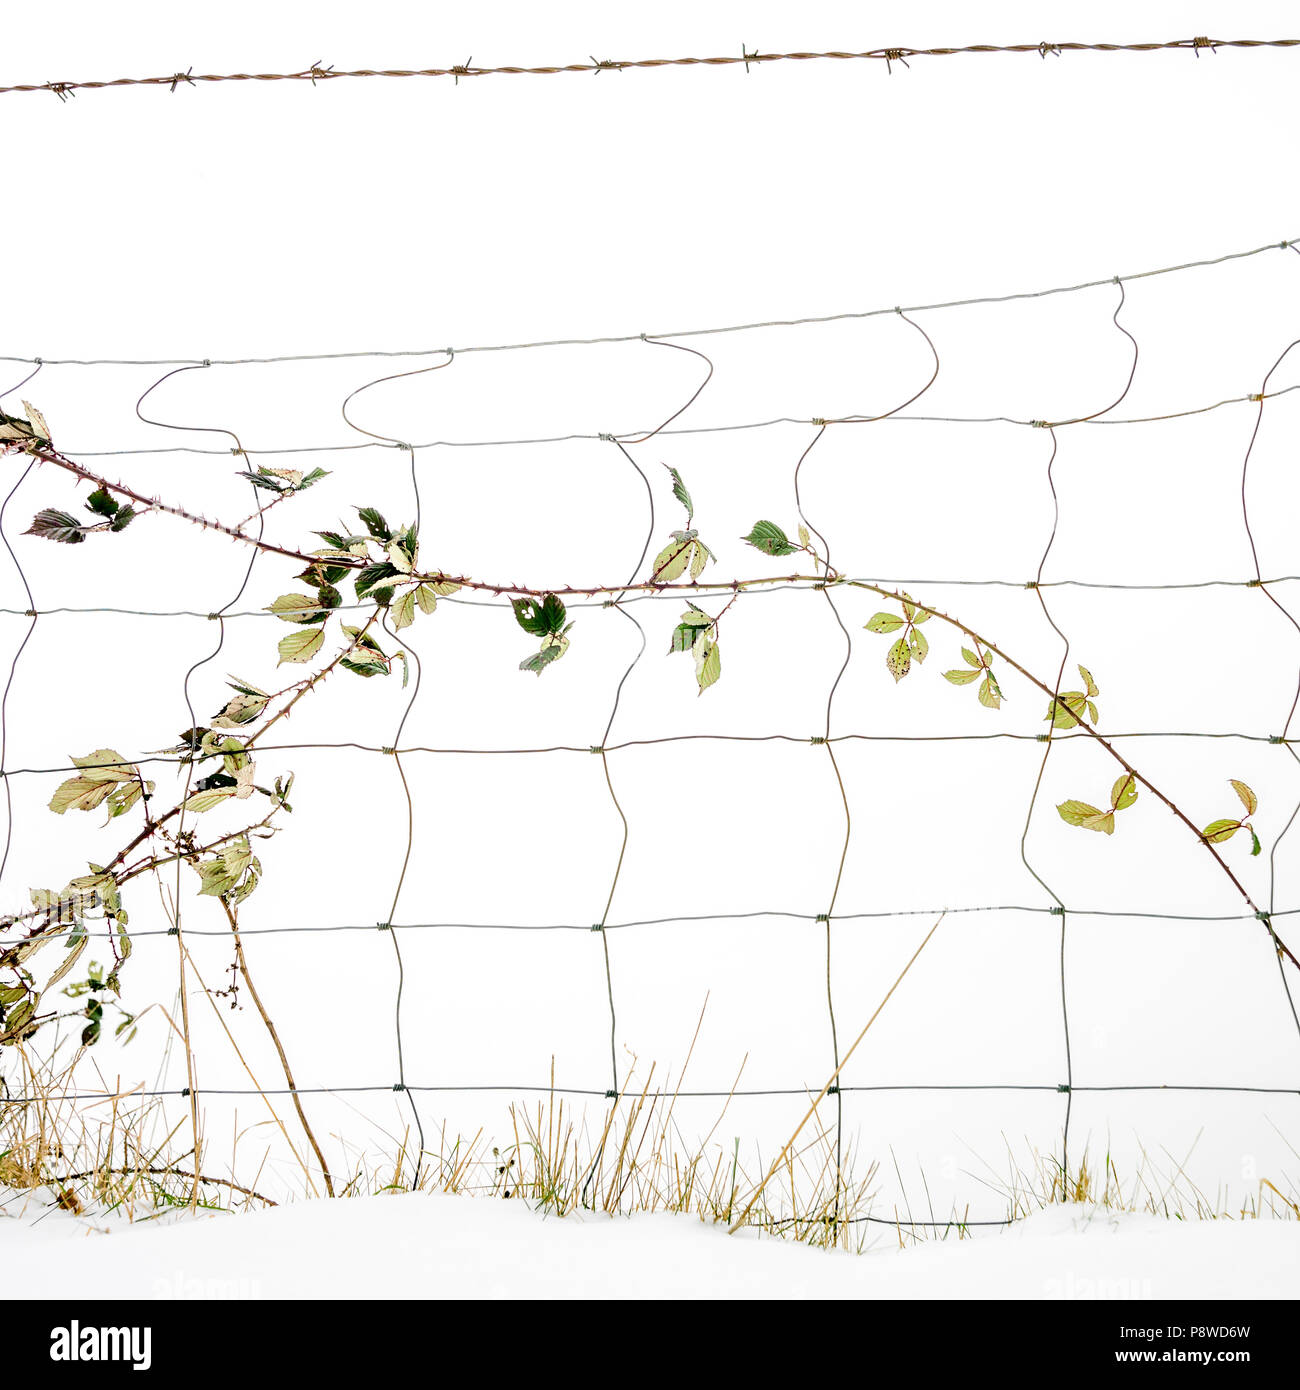 Brambles entangled in a wire fence amongst snow, France - Stock Image